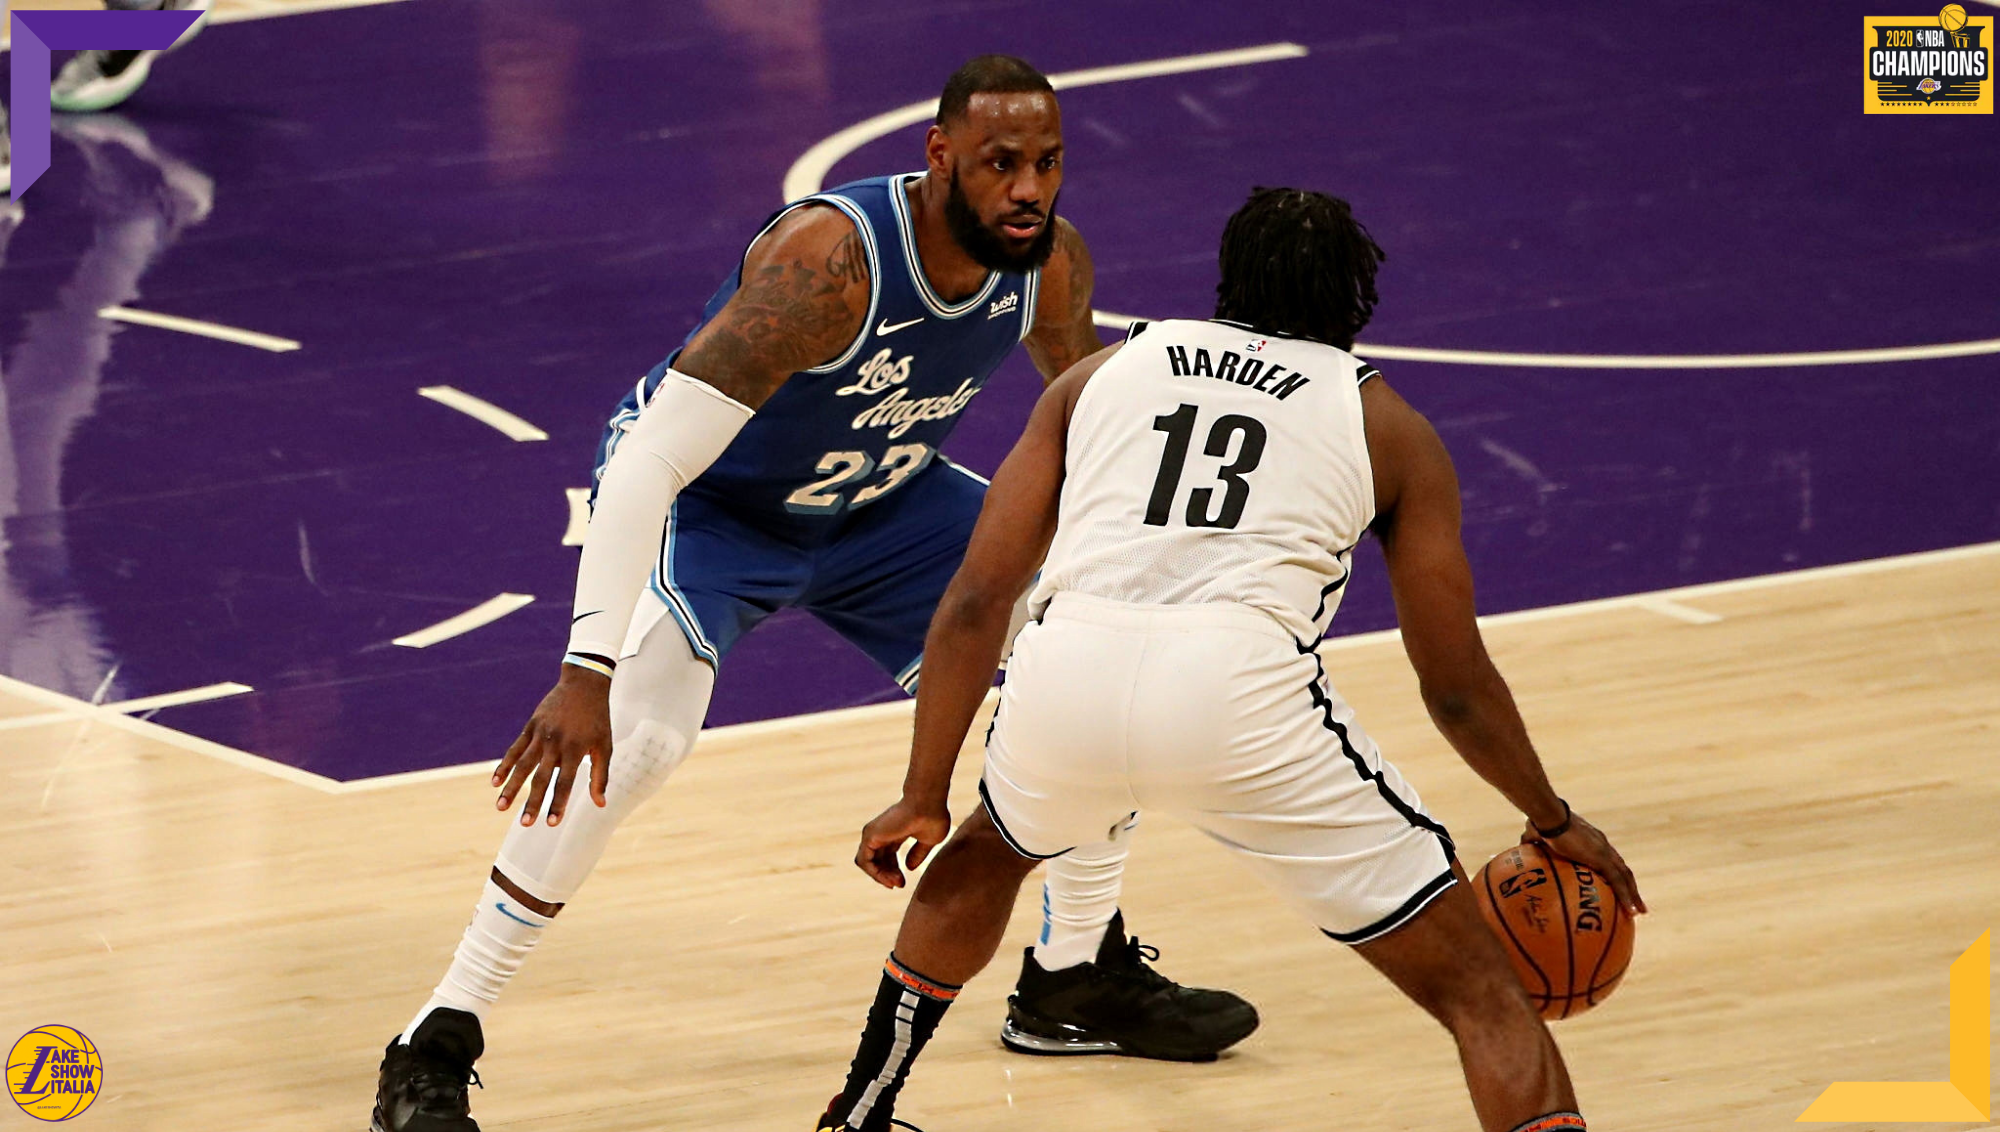 LeBron James and James Harden, Los Angeles Lakers vs Brooklyn Nets